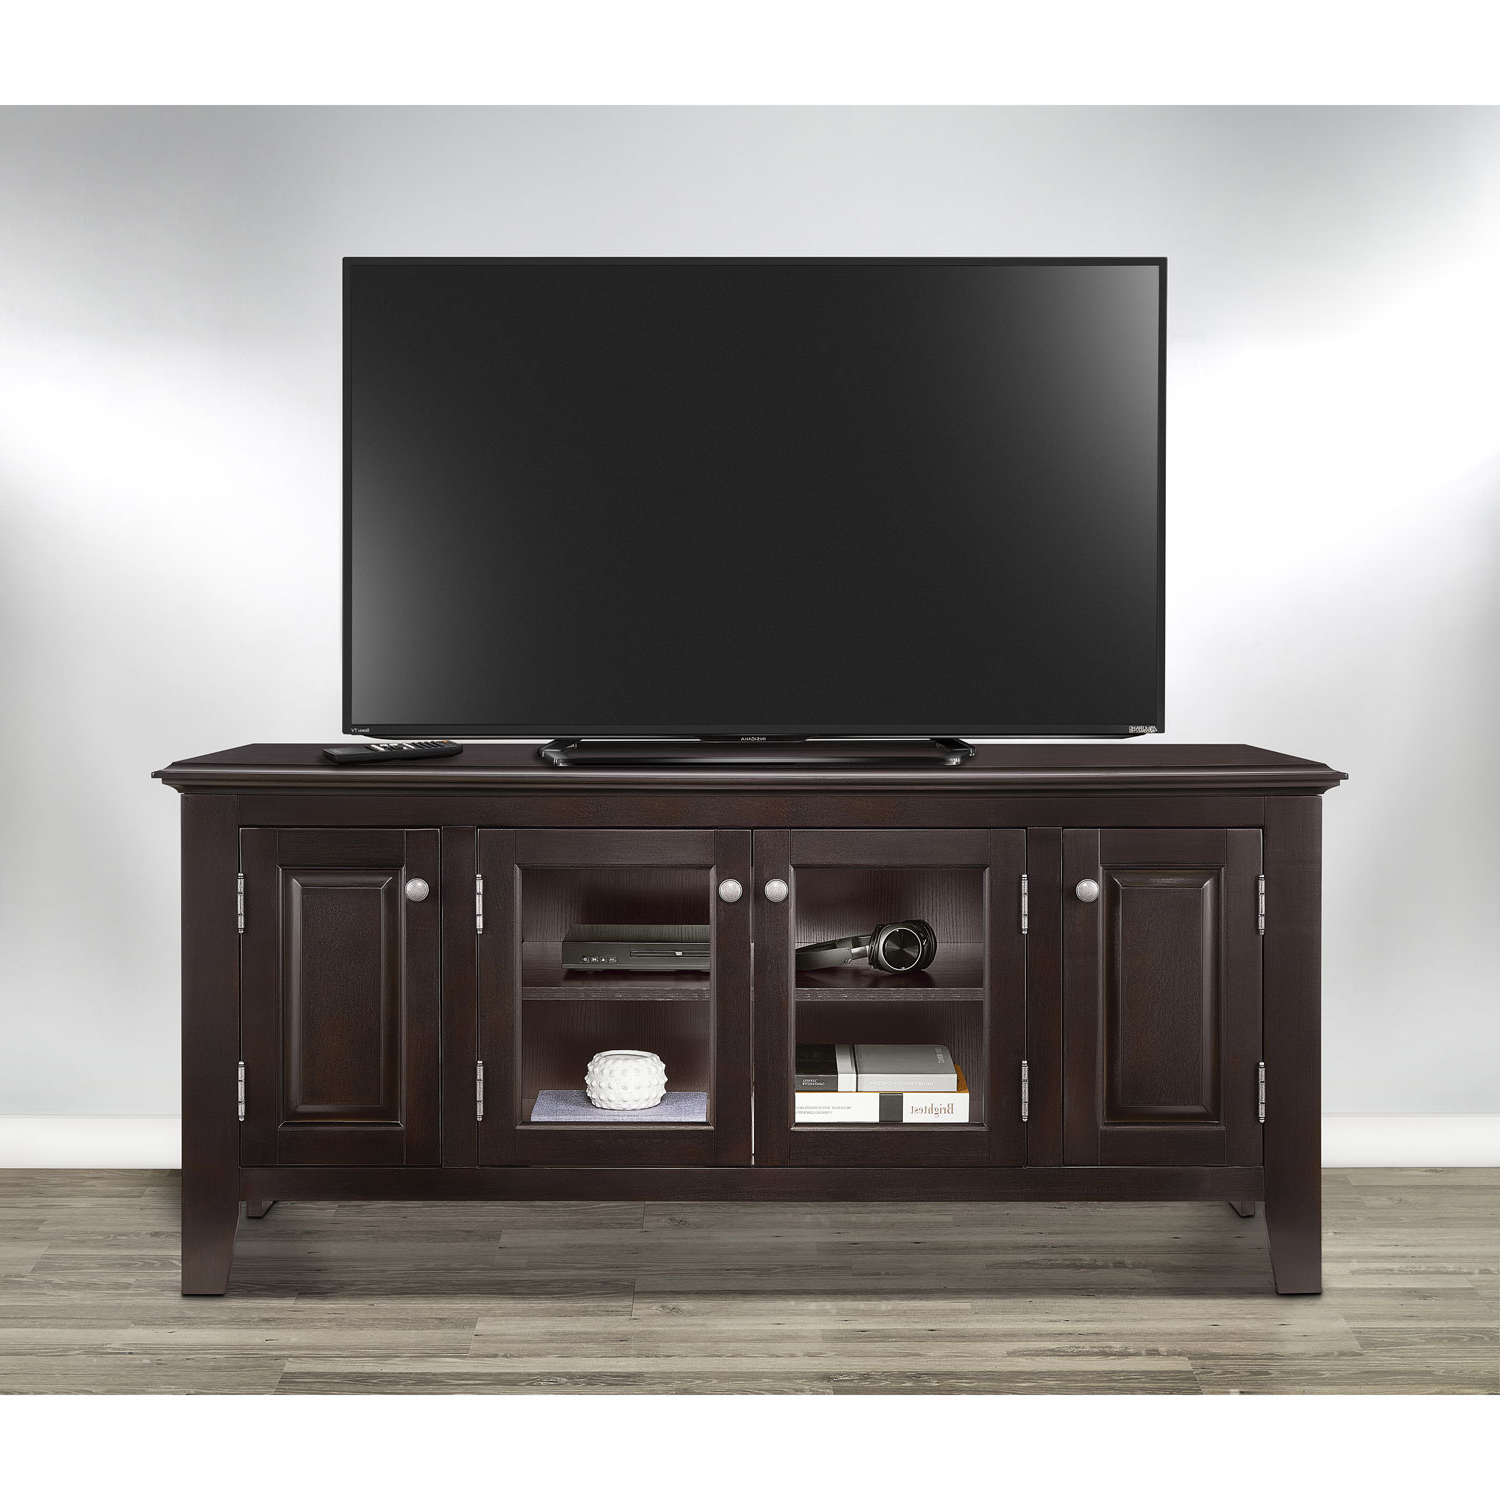 "Insignia 60"" Tv Stand – Dark Espresso : Tv Stands – Best Buy Canada With Valencia 60 Inch Tv Stands (Gallery 13 of 20)"